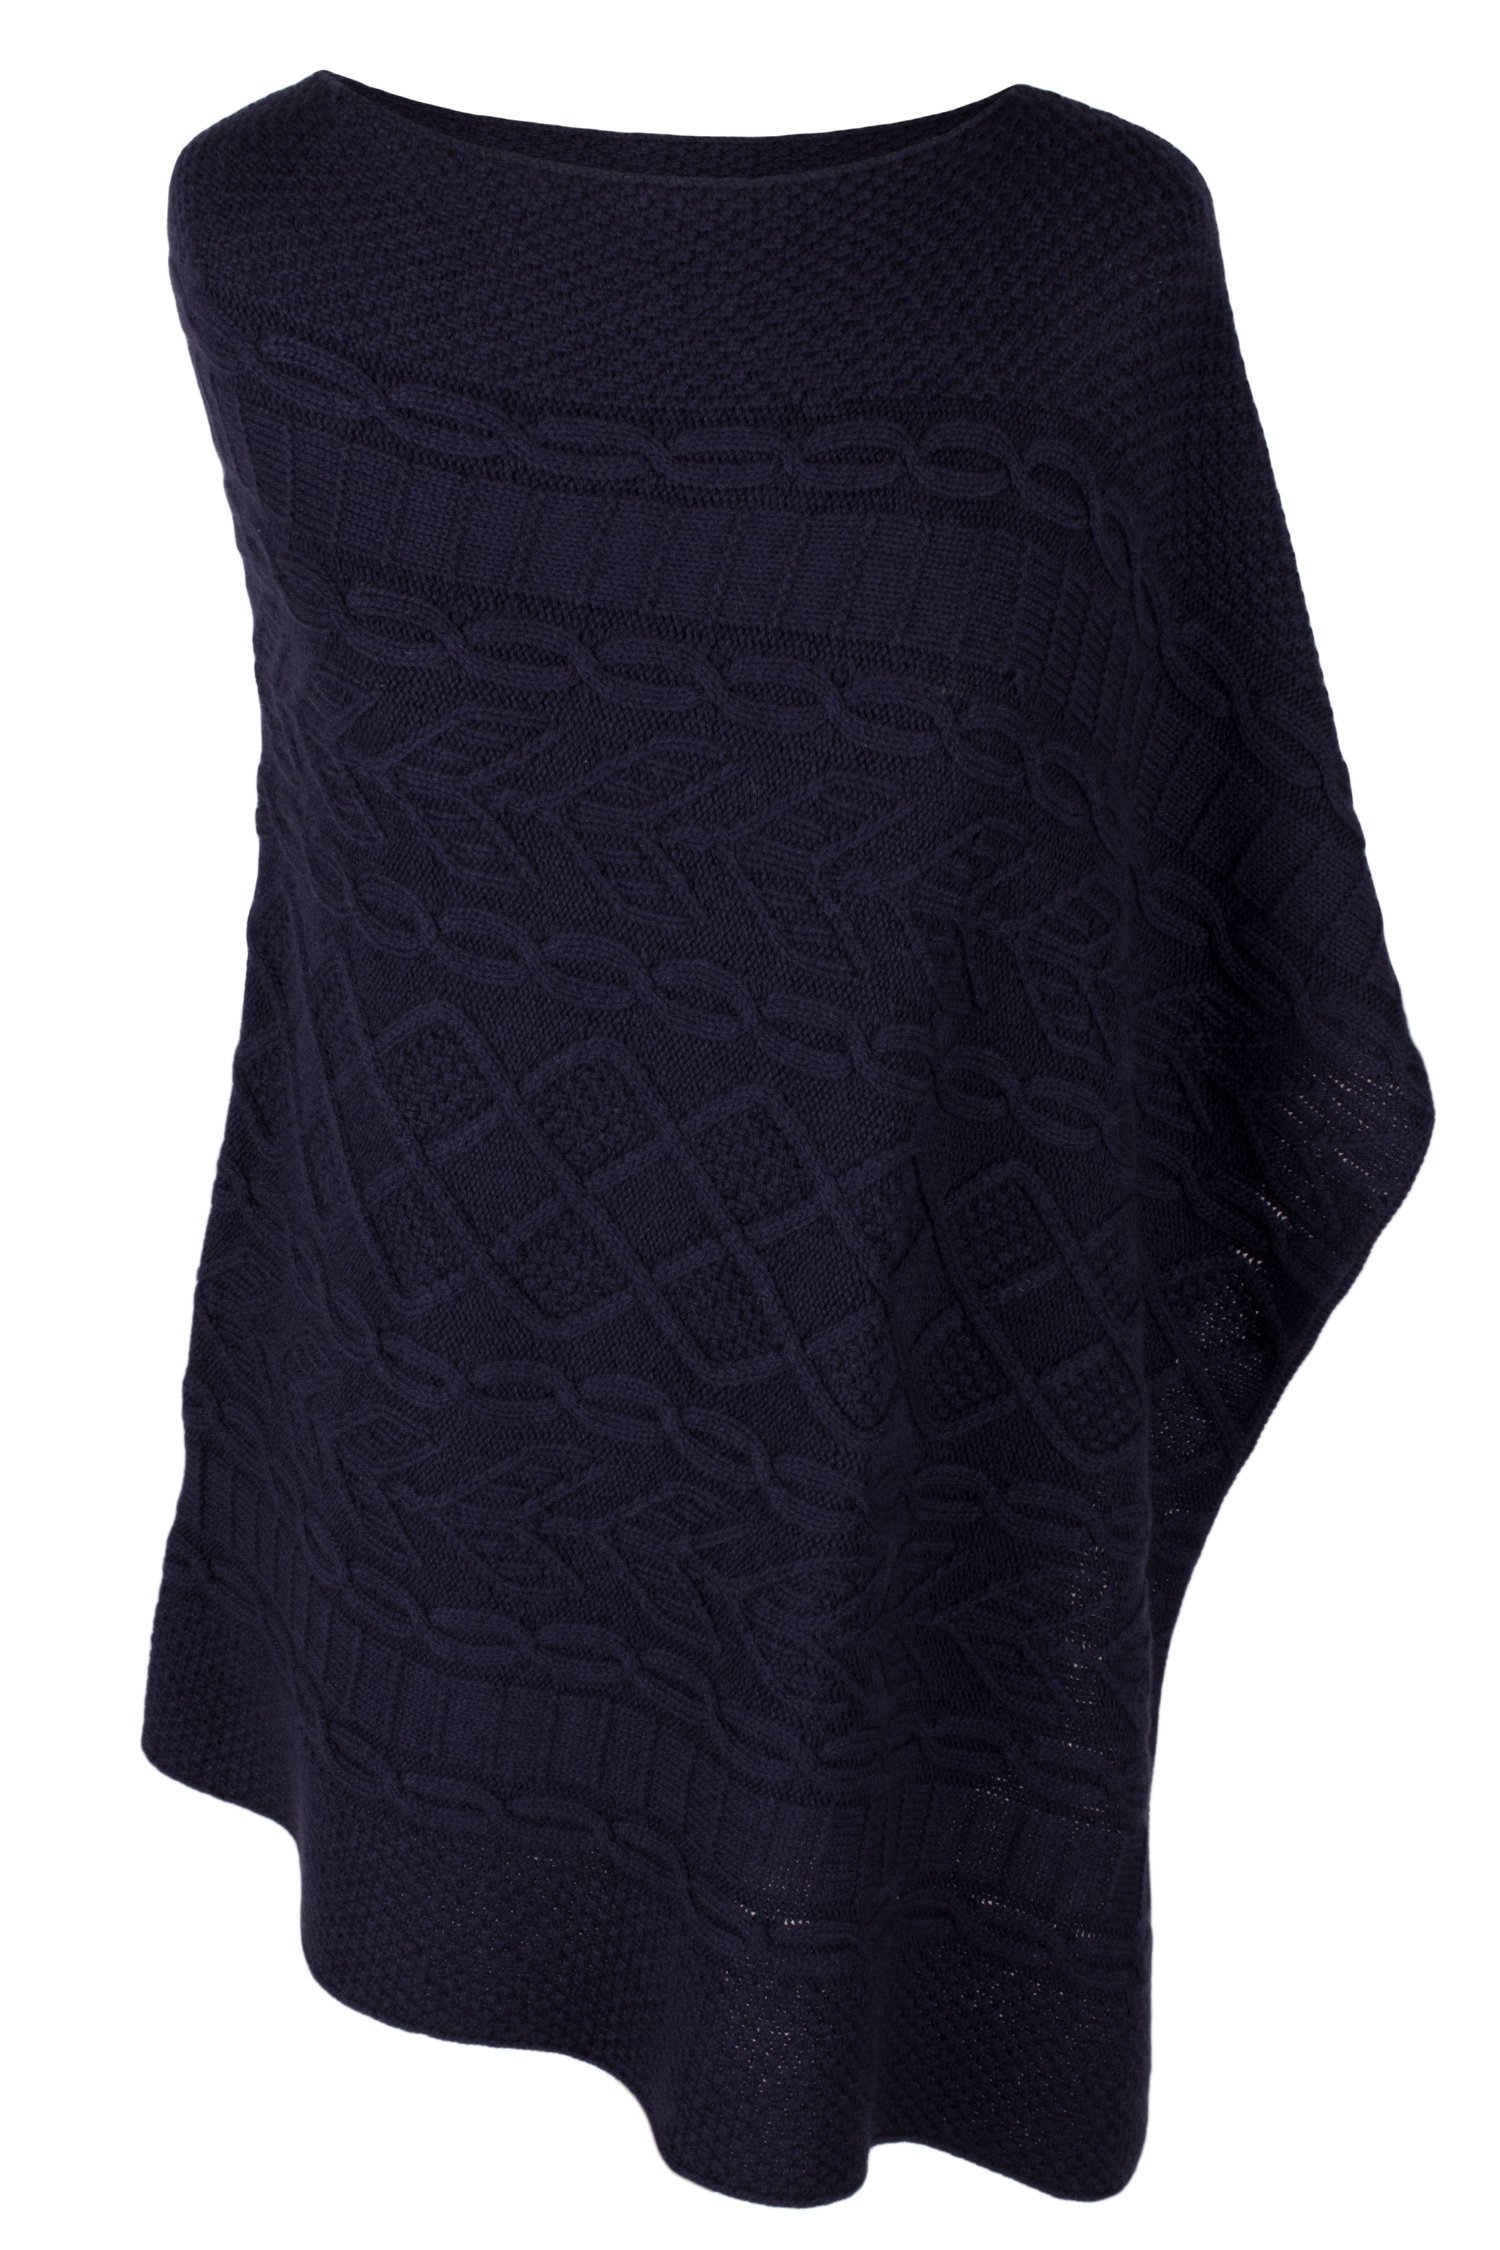 Women's 100% Cashmere Cable Poncho - Navy Blue - made in Scotland by Love Cashmere